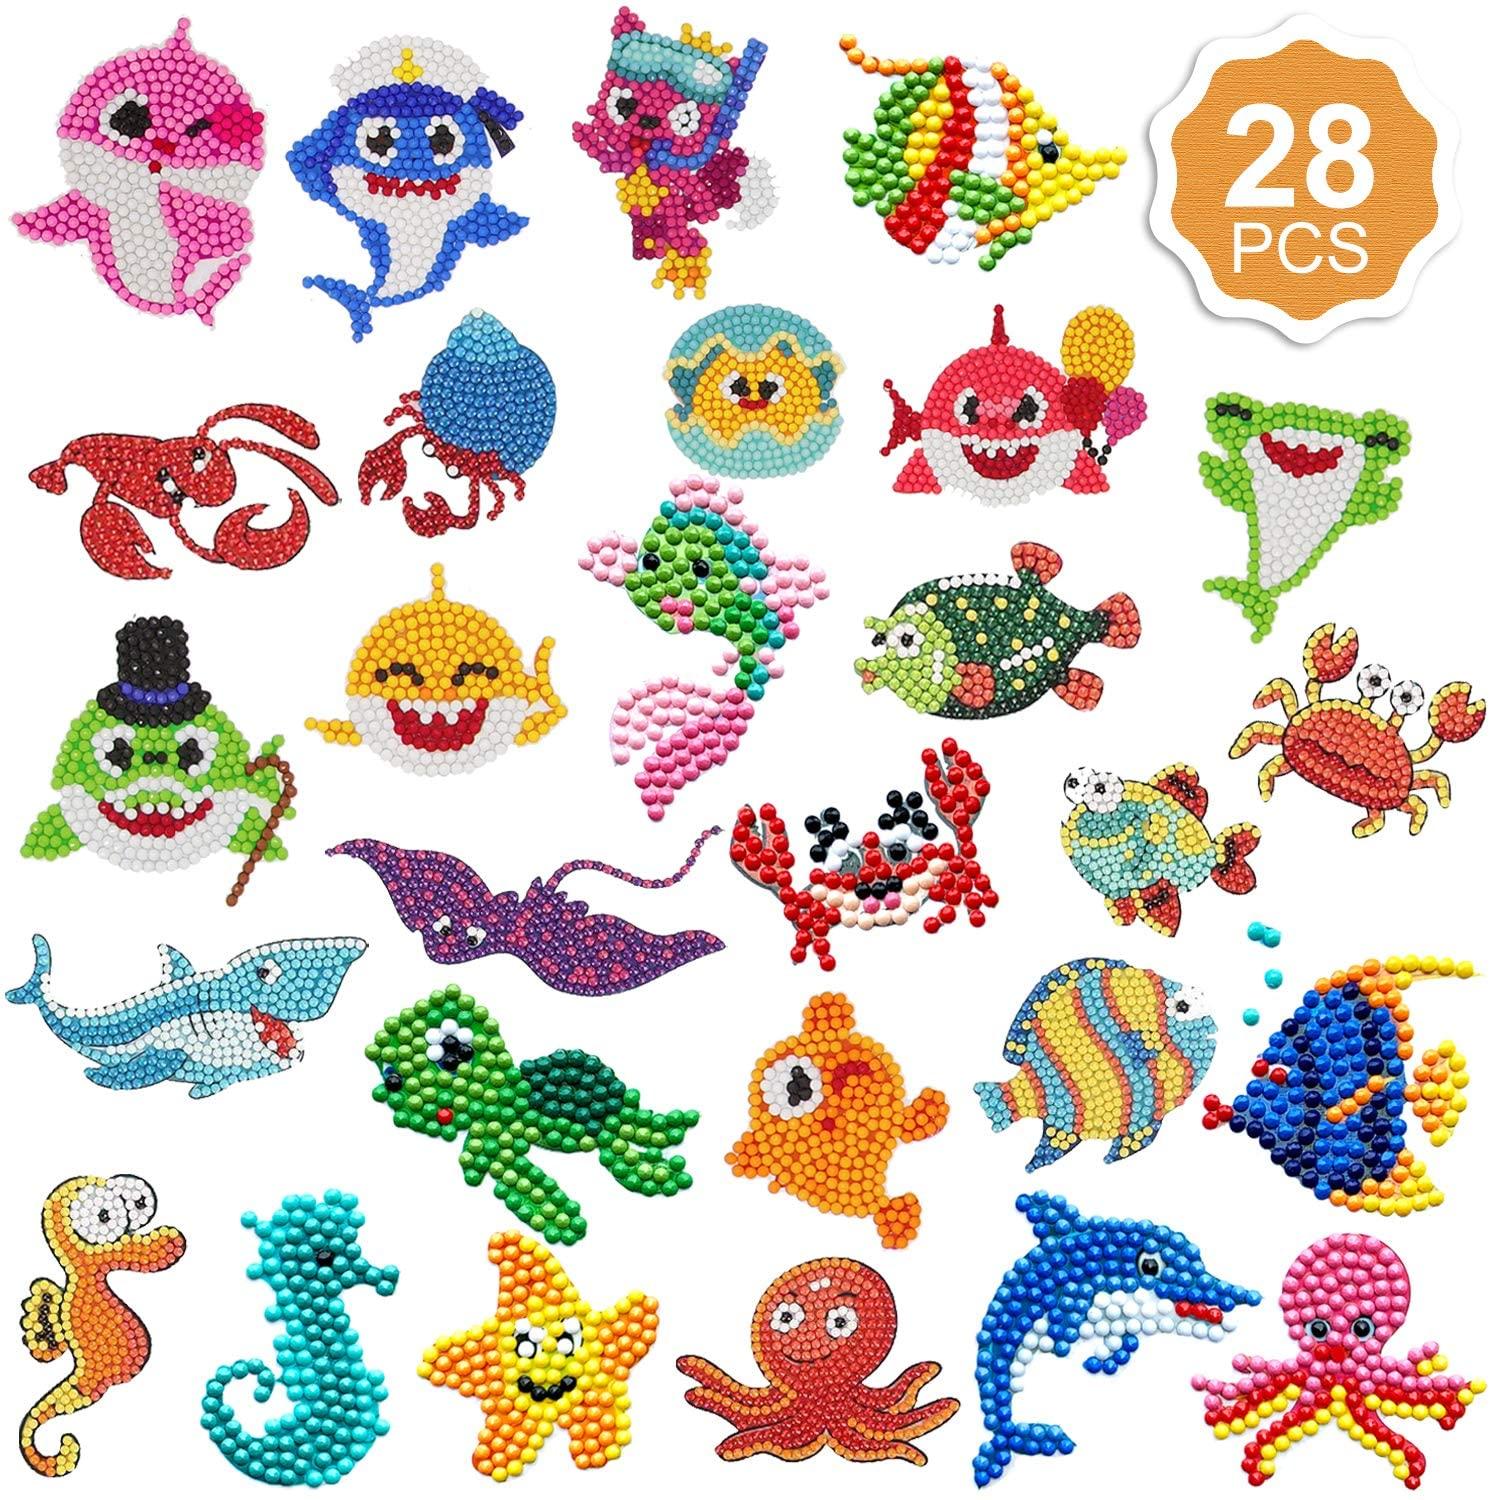 Konsait 28 Pack Diamond Painting Stickers Kits for Kids,DIY Arts Crafts 5D Cute Diamond Mosaic Stickers Paint by Number Diamonds for Children Adult Beginners -Birthday Christmas Gift-Ocean Sea Shark